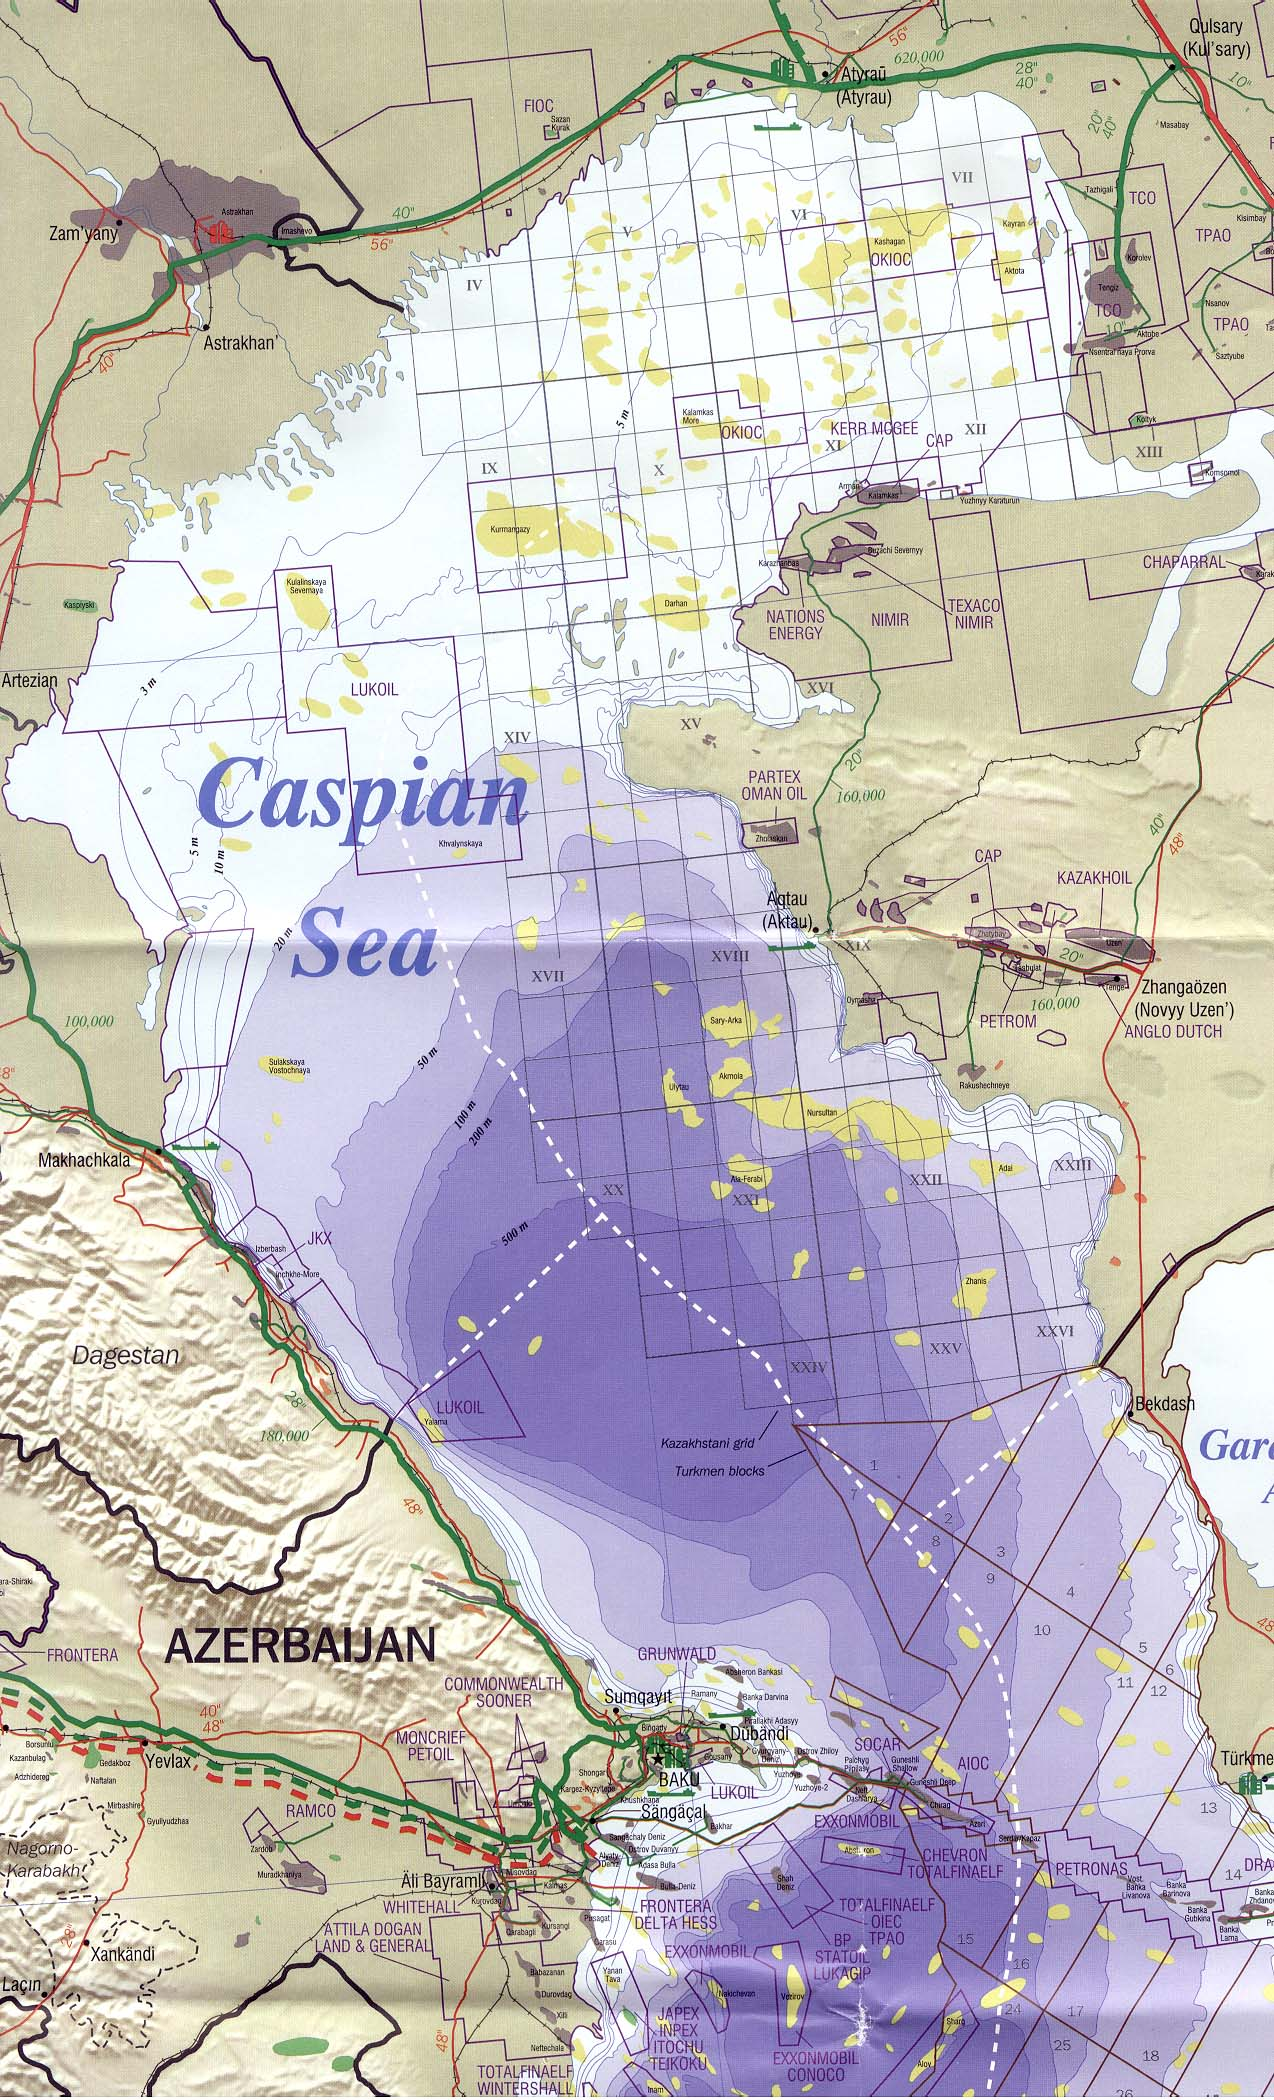 World Map Caspian Sea.Download Free World Energy Maps For Alternative And Renewable Green